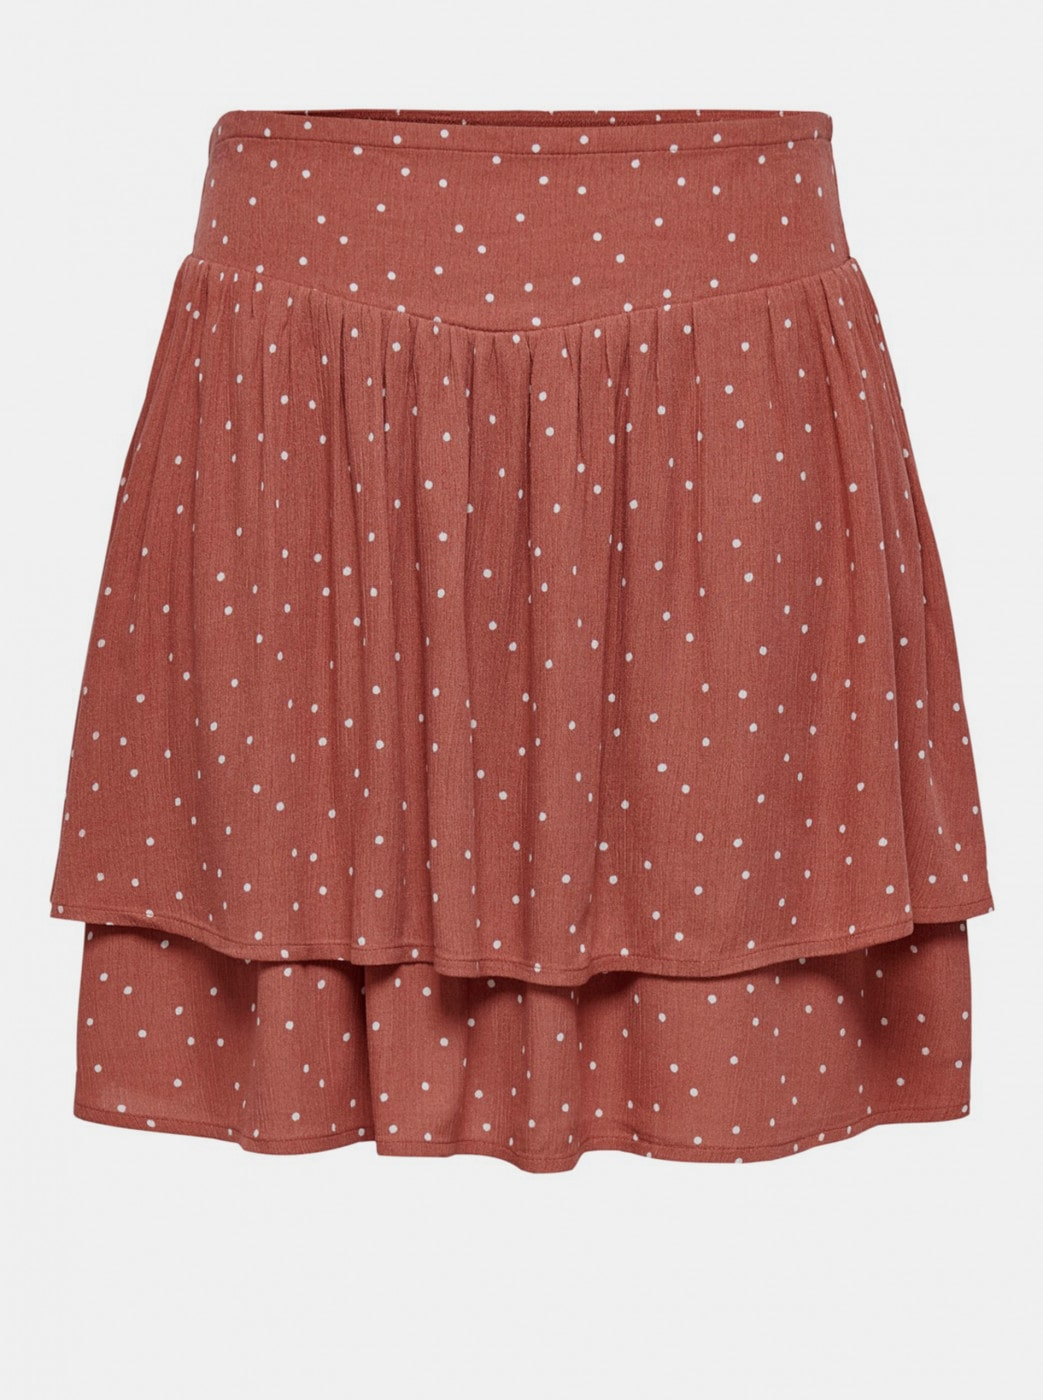 Jacqueline de Yong Caro Brown Polka Dot Skirt